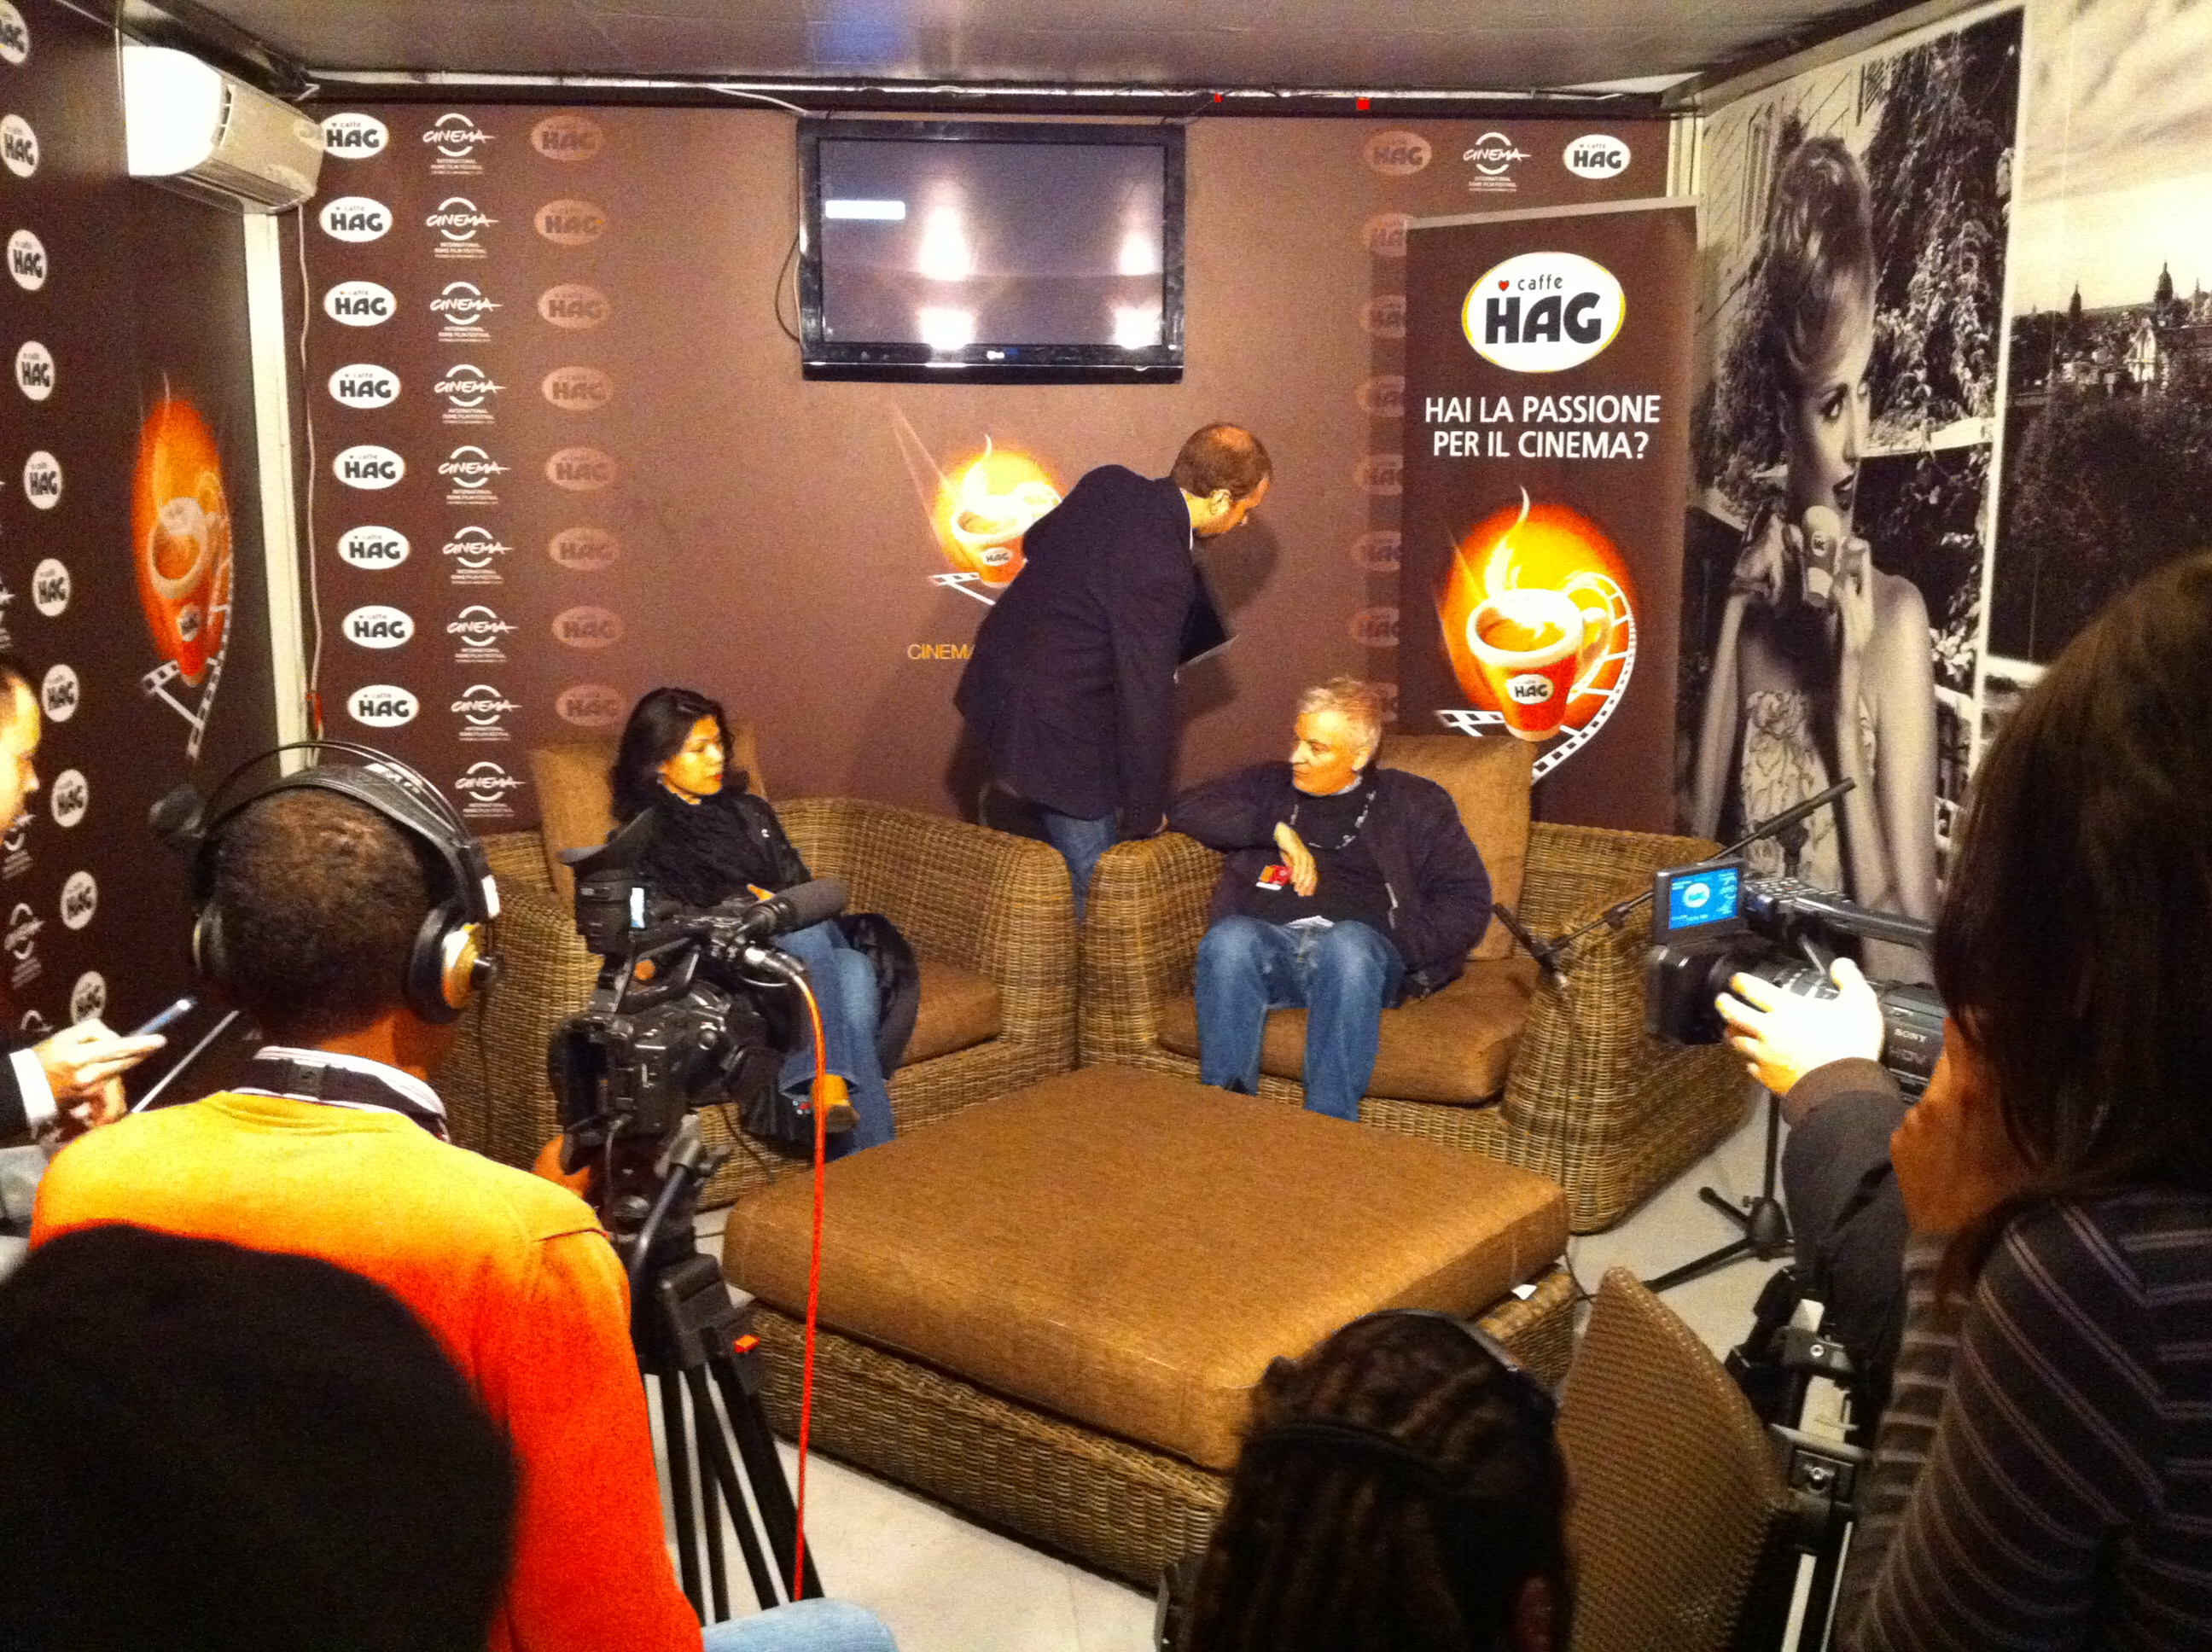 TV interviews of David Aronowitsch, Theary Seng (International Rome Film Festival, 2 Nov. 2010)